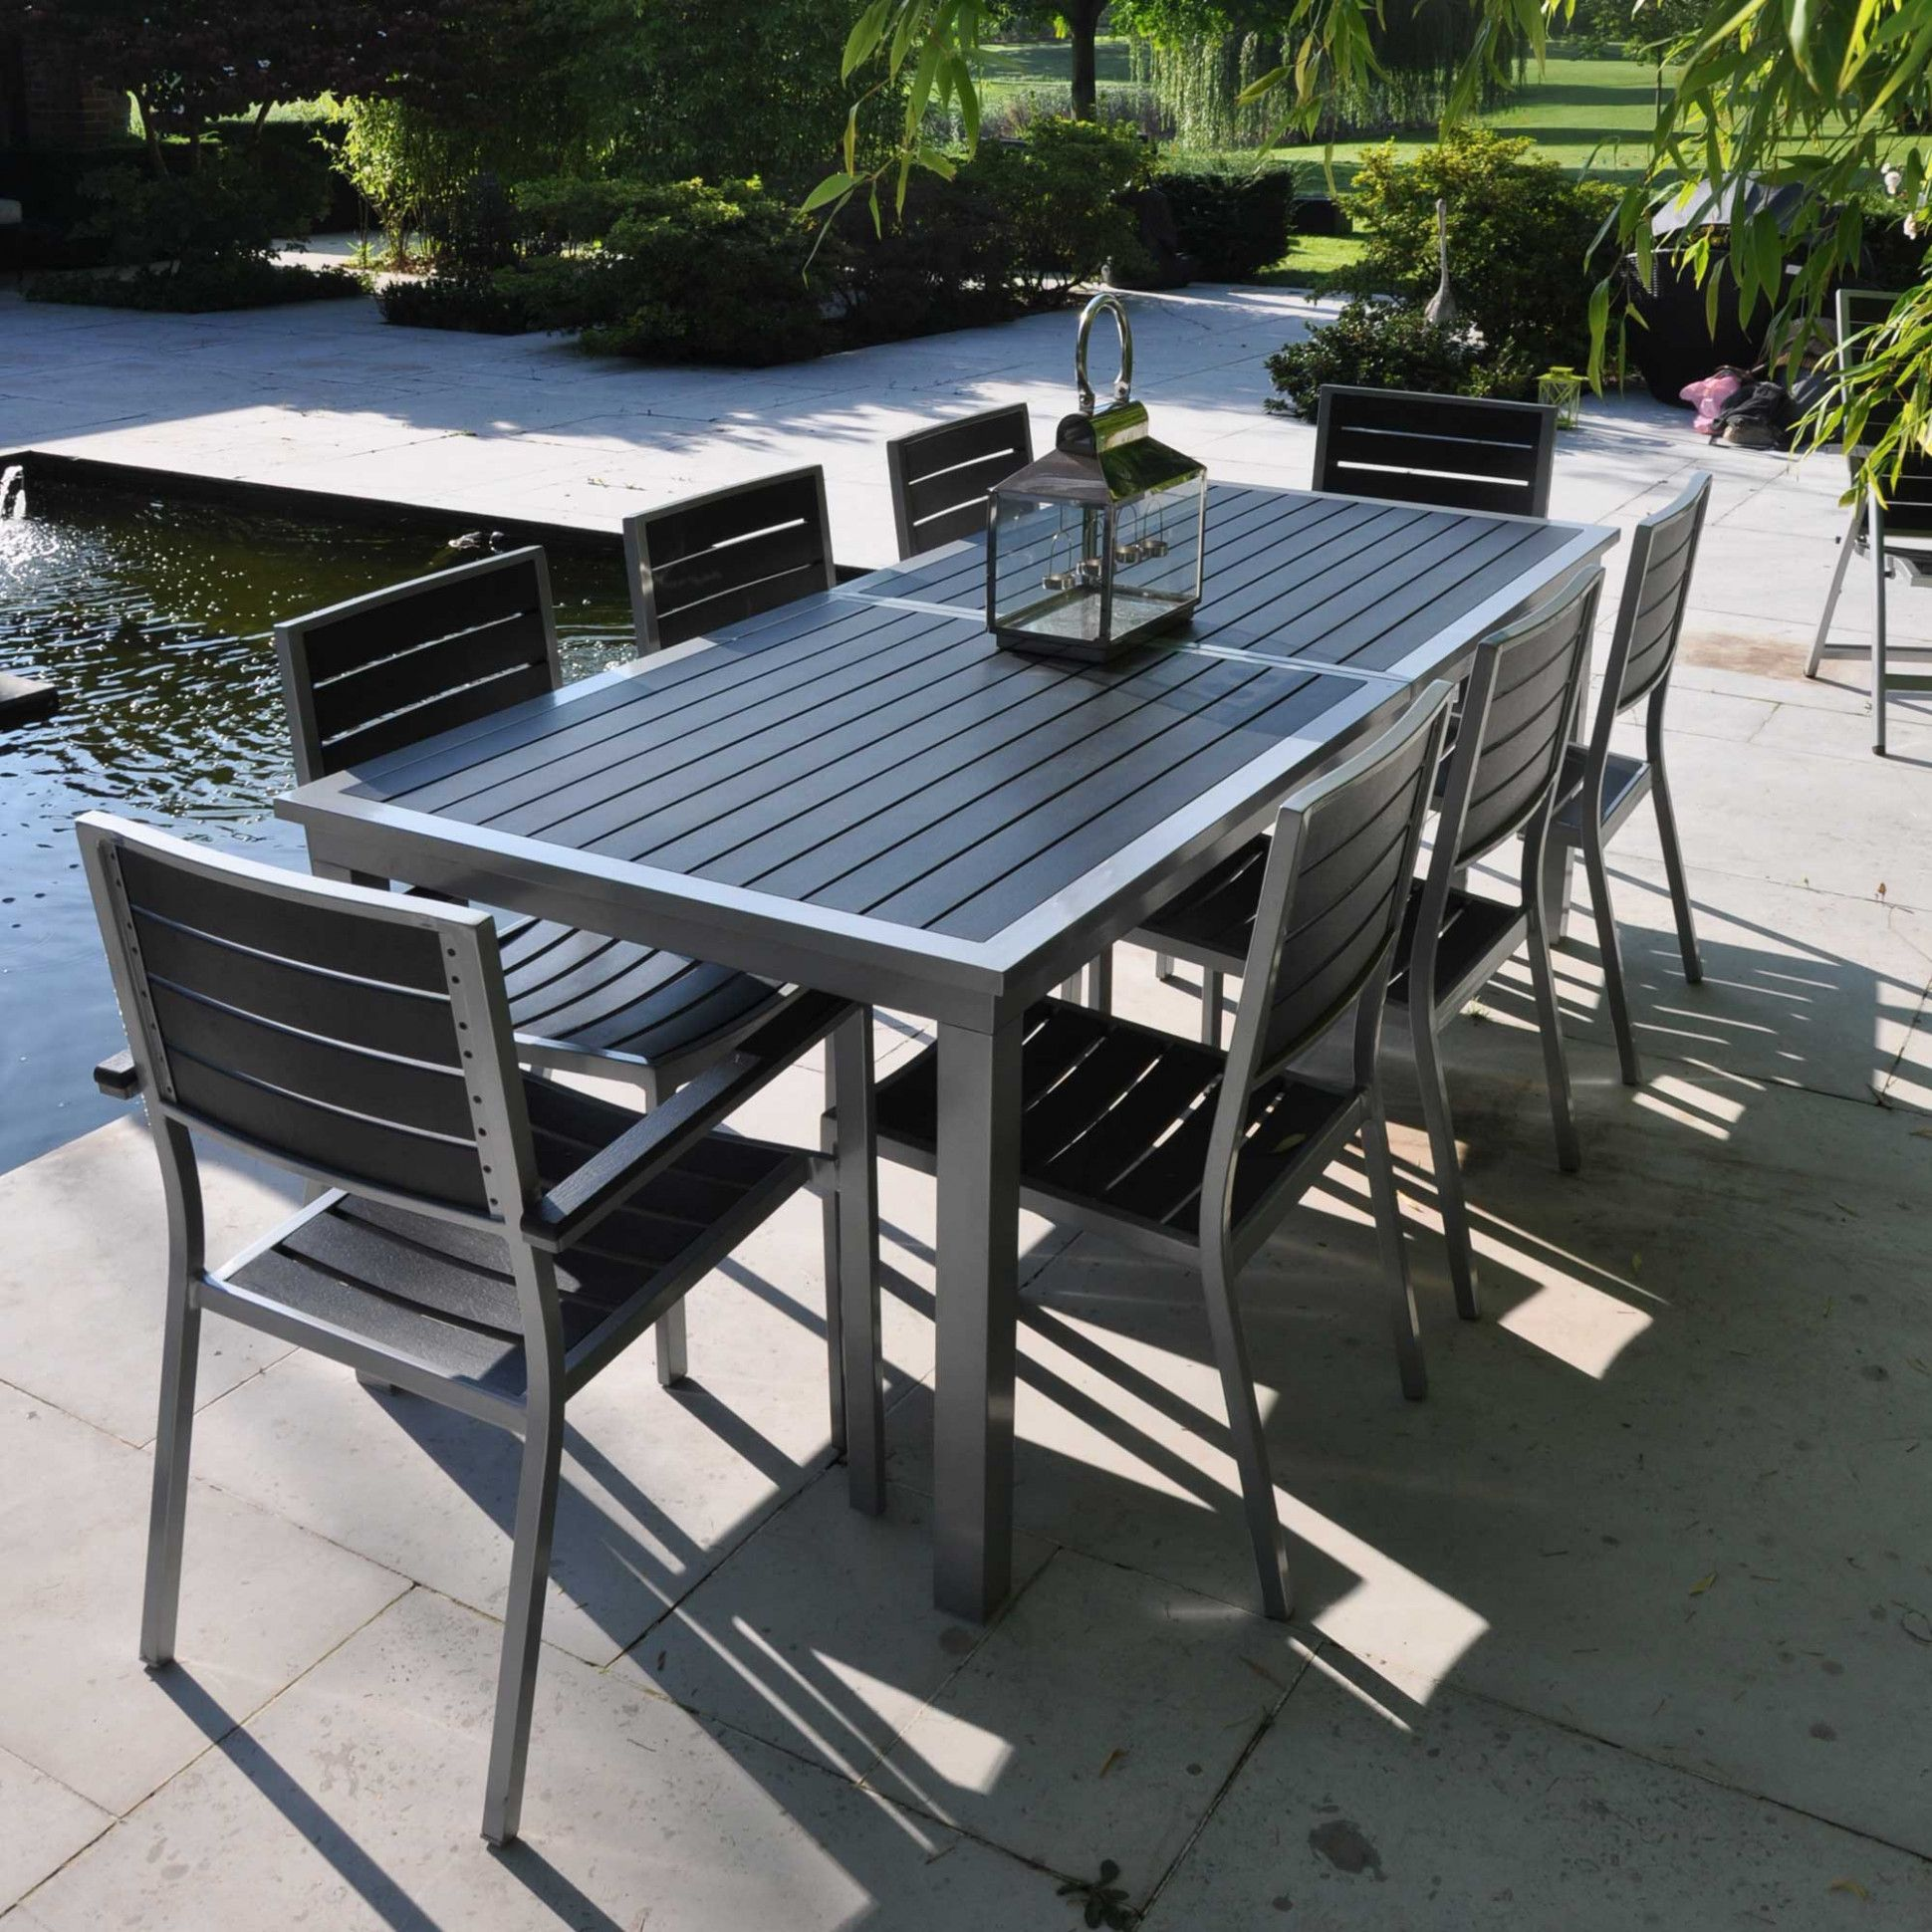 Solde Table De Jardin In 2020 Outdoor Furniture Outdoor Decor